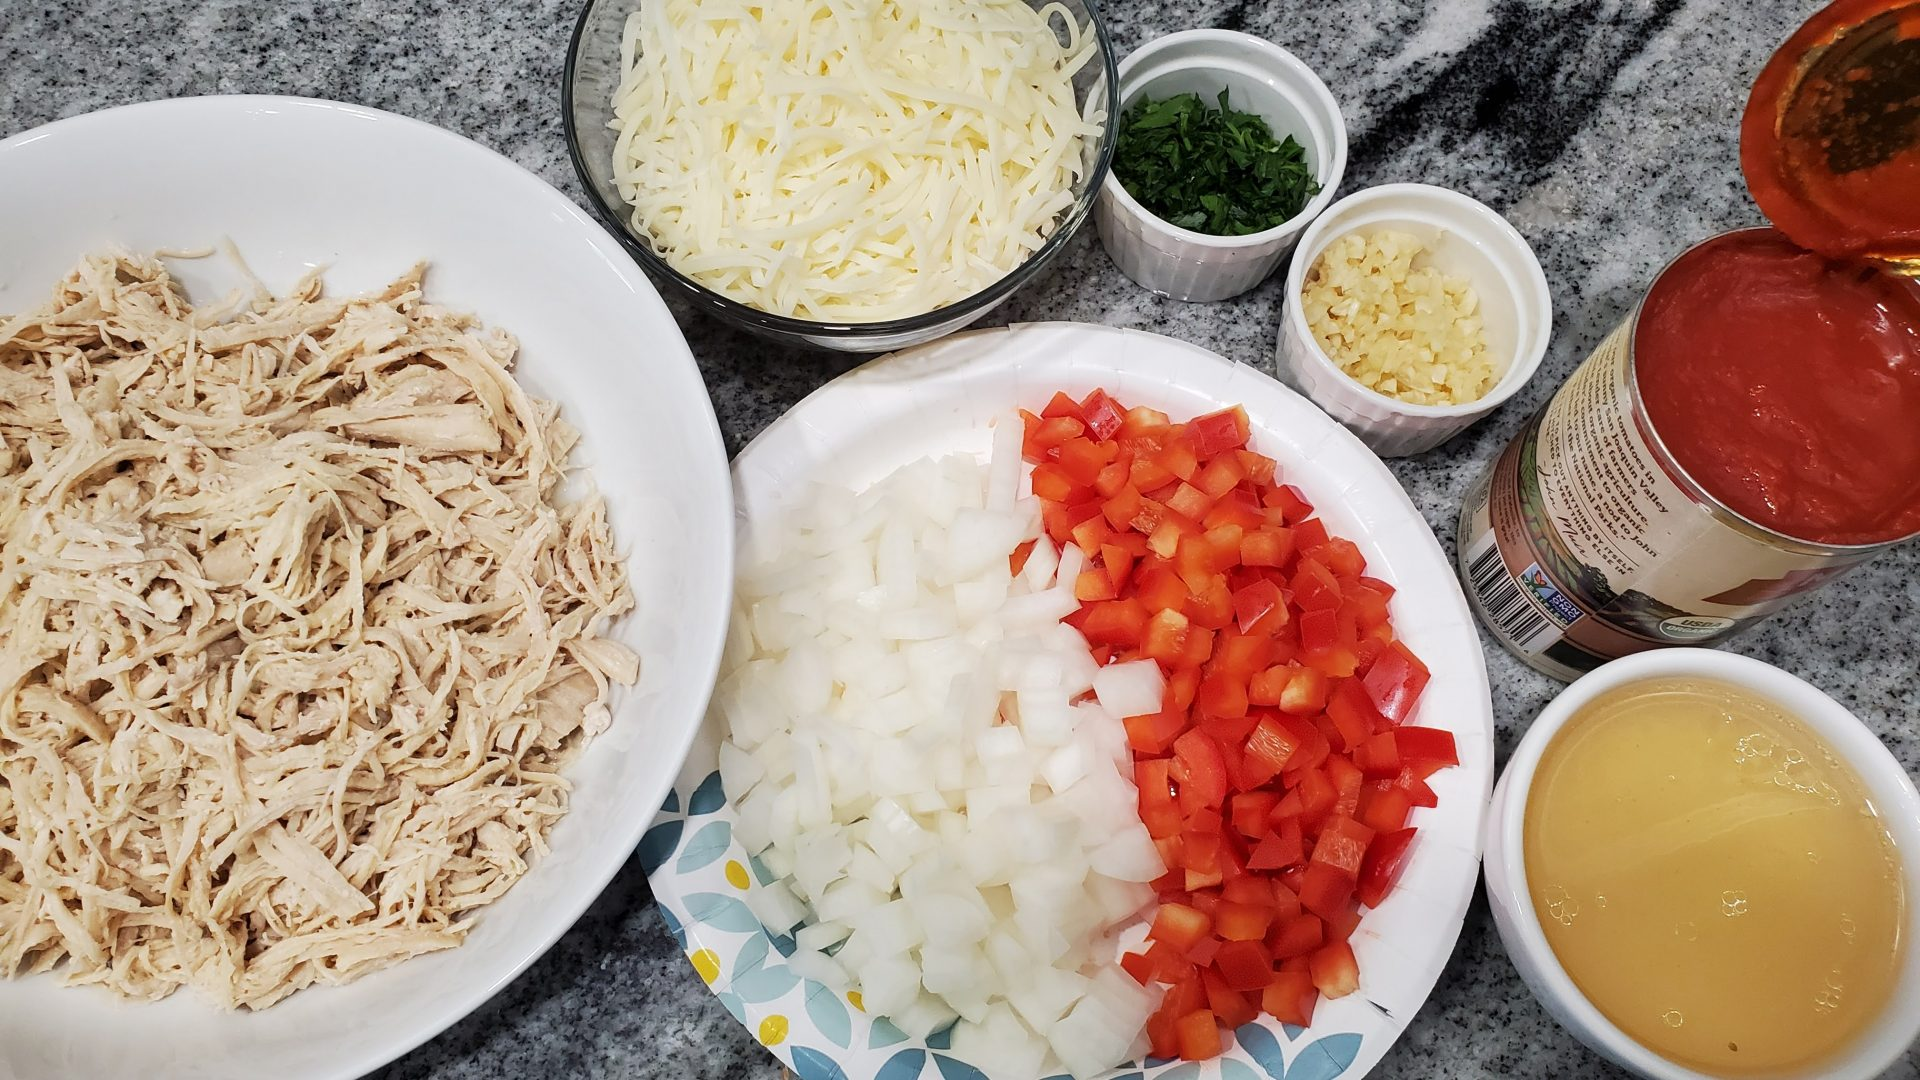 The ingredients needed to make a chicken lasagna are shredded chicken, cheese, red pepper, onion, garlic, tomato sauce, chicken broth, heavy cream and parsley.